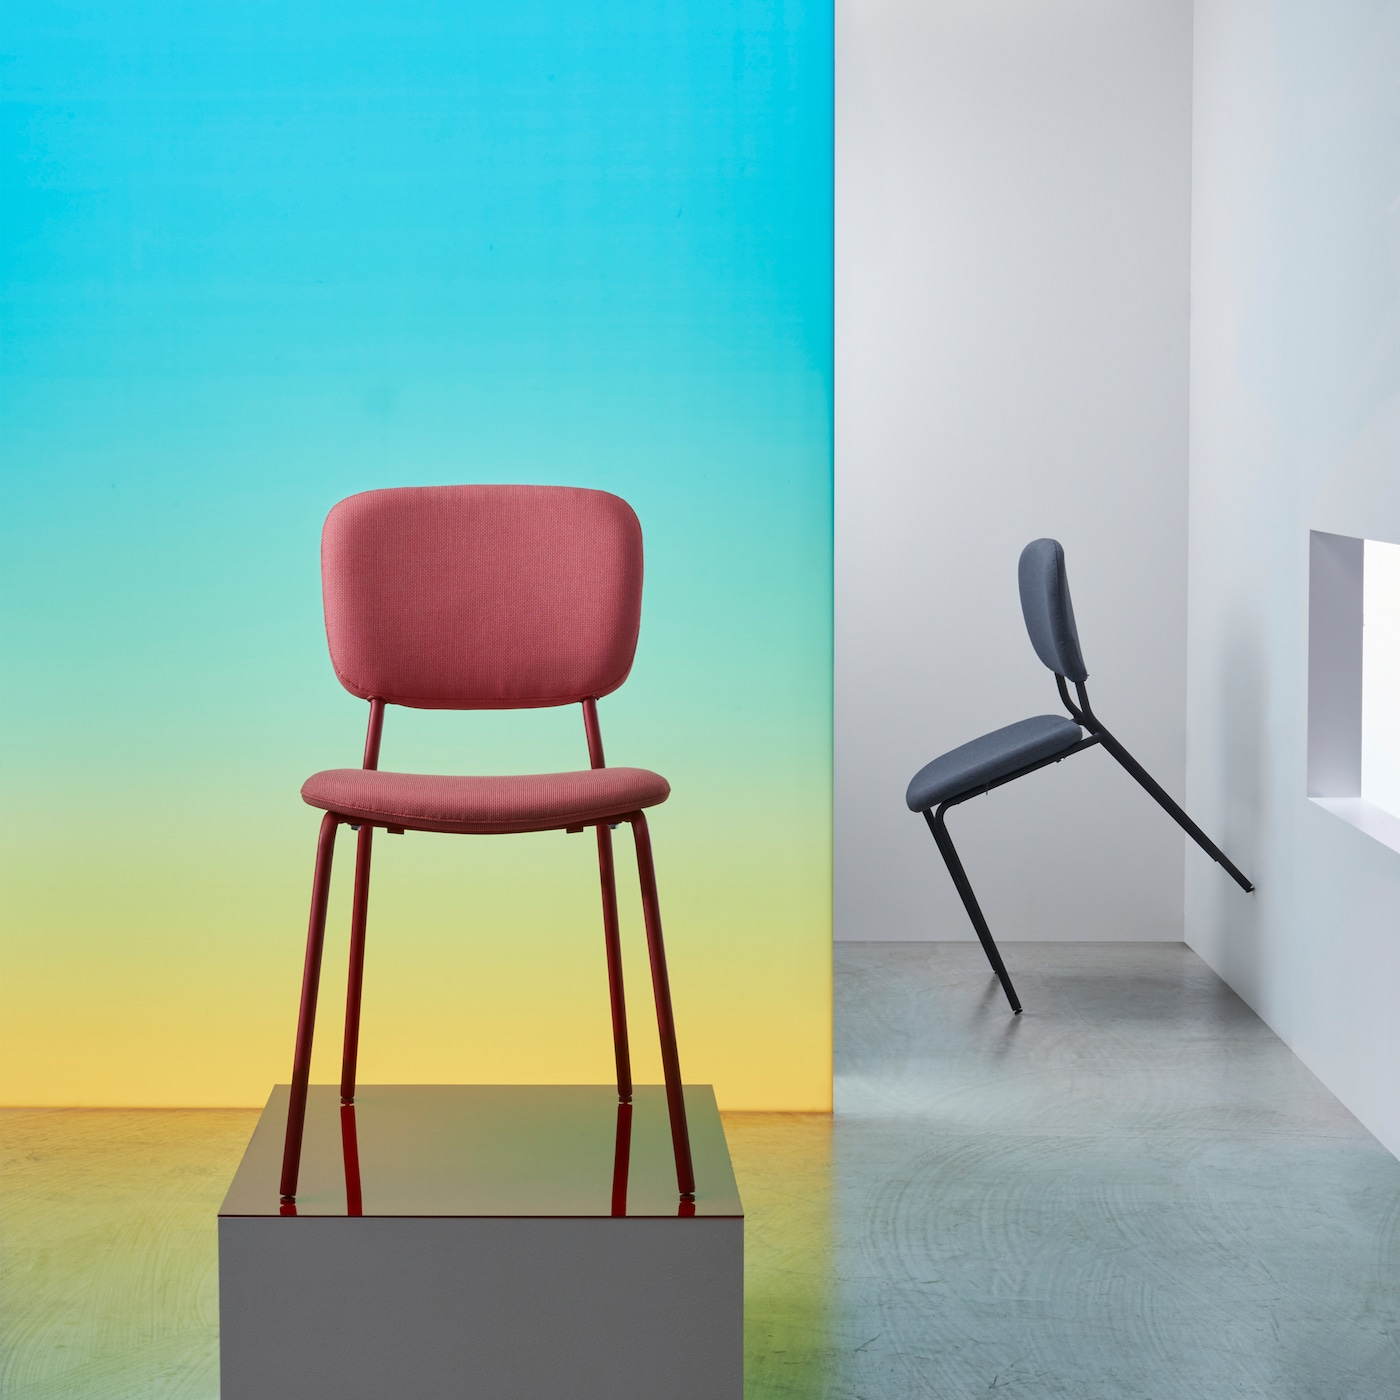 A red KARLJAN chair with an upholstered seat and backrest on a metal frame with a retro-inspired design.